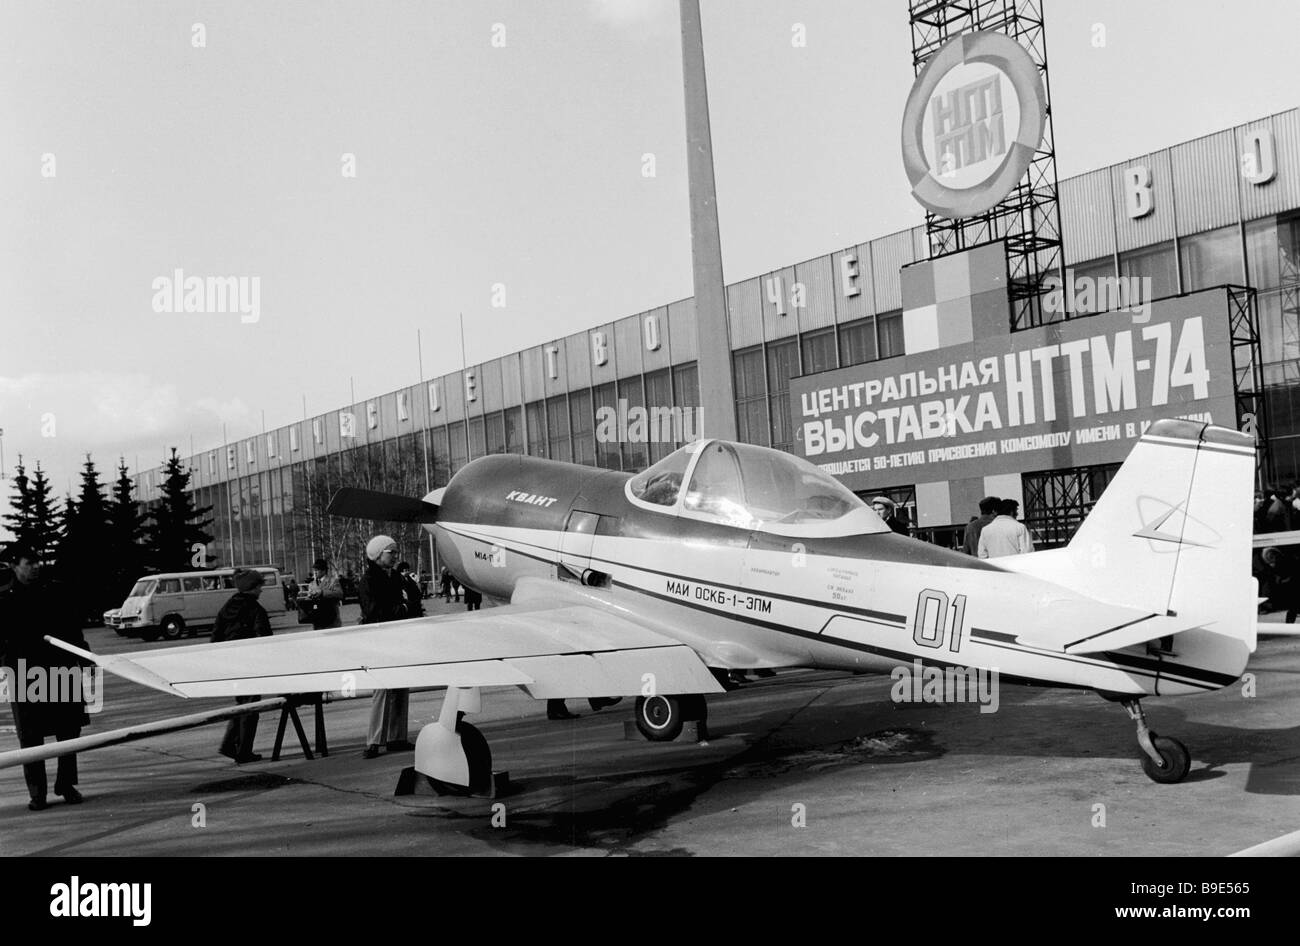 The single seater aerobatic plane Kvant which was designed and built by students of the Moscow Aviation Institute - Stock Image